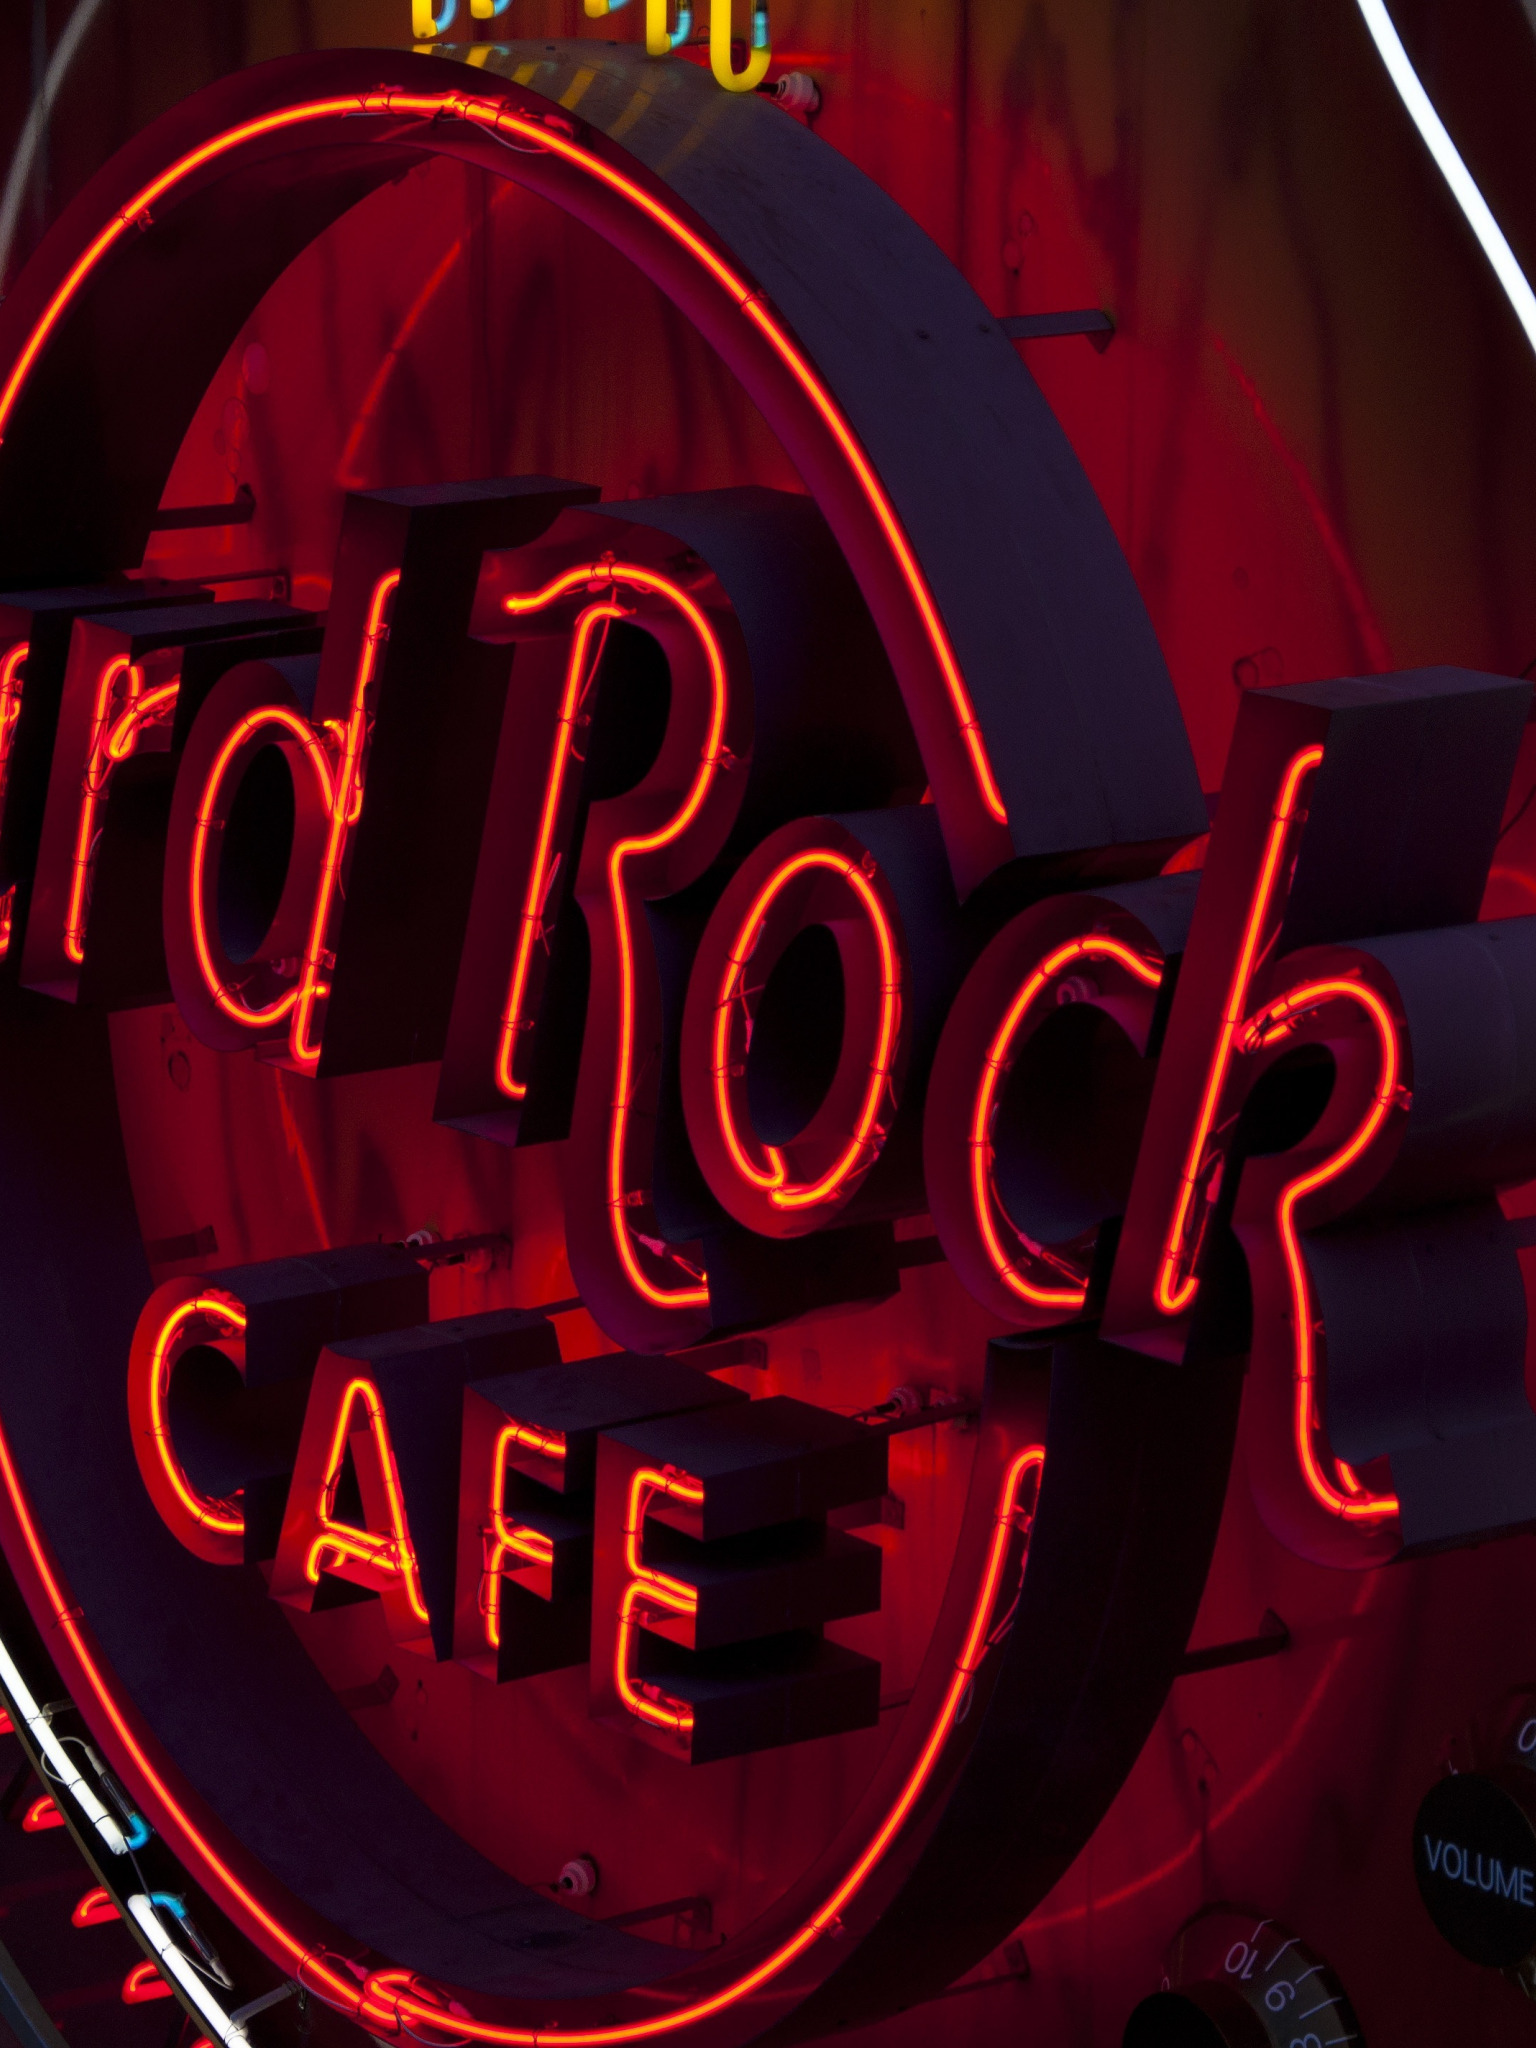 hard rock cafe strategy changes Hard rock cafe inc is a chain of theme restaurants founded in 1971 by isaac tigrett and peter morton in london in 1979, the cafe began covering its walls with rock.